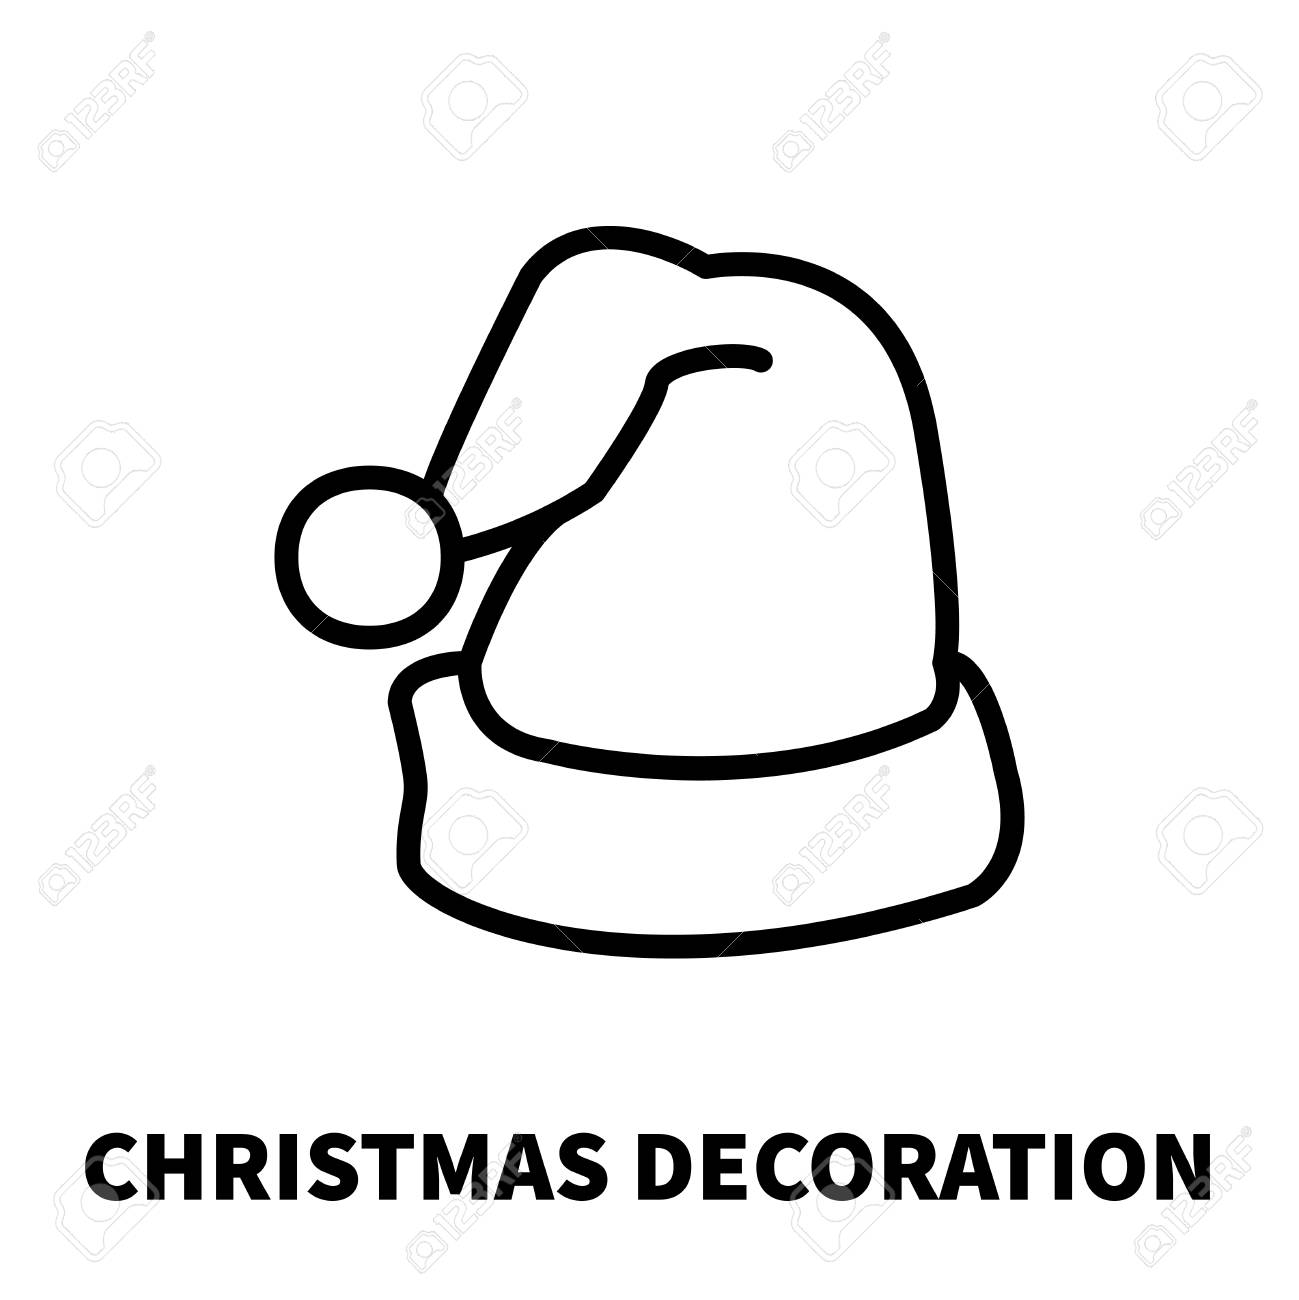 44a64878d2e9b Christmas decoration icon or logo in modern line style. High quality black  outline pictogram for